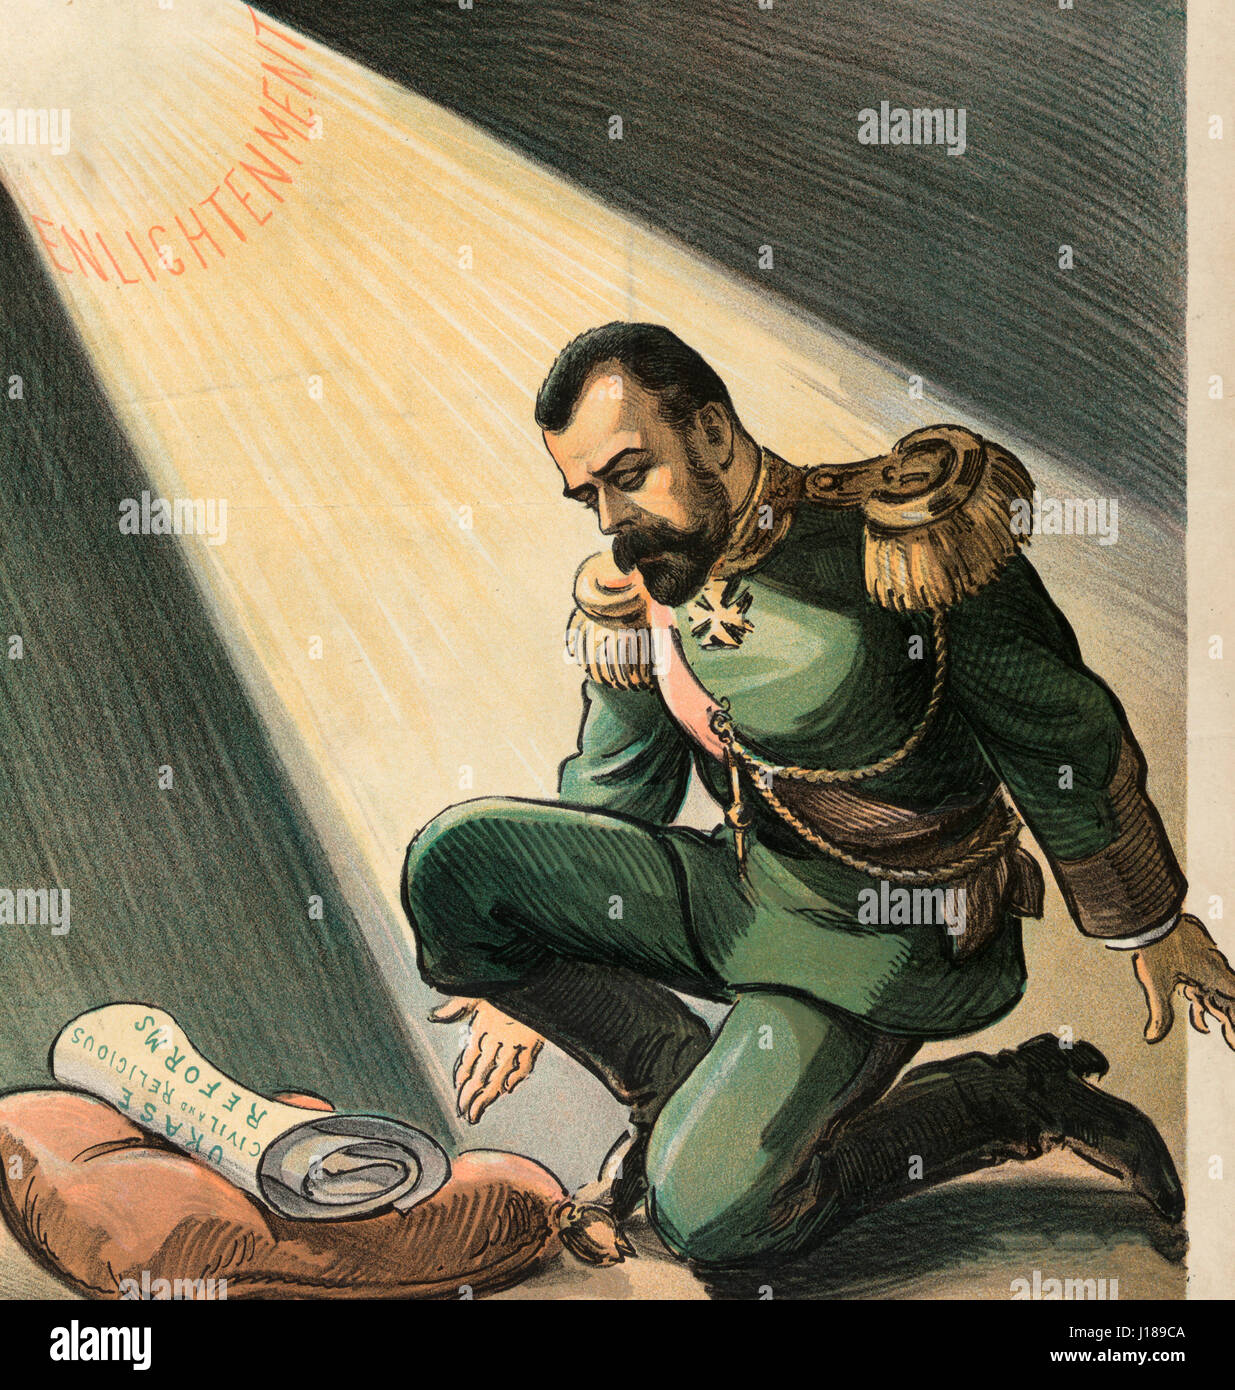 Light in darkest Russia - Illustration shows Nicholas II, Emperor of Russia, kneeling on one knee before a pillow - Stock Image